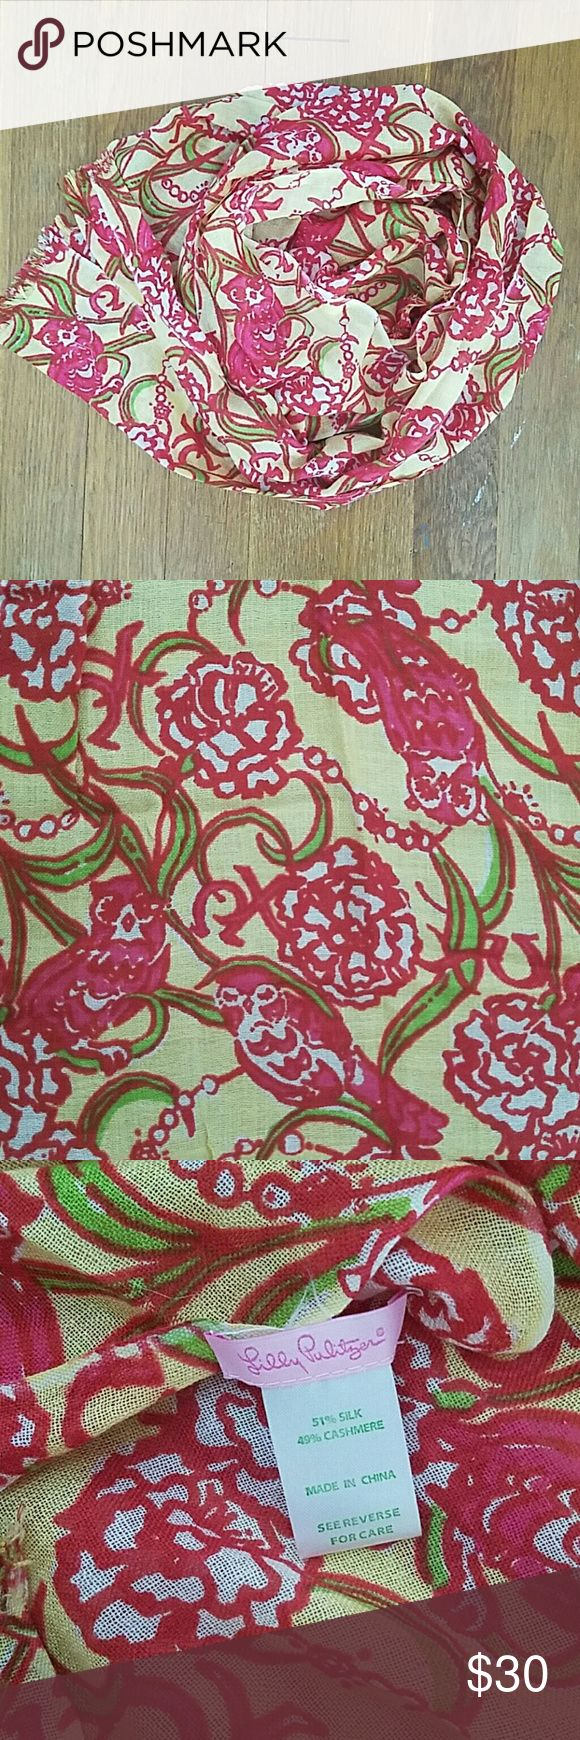 Lilly Pulitzer silk and cashmere Chi Omega scarf Perfect for any Chi O!! Wear it yourself or give it to your Big or Little for a special gift. This silk/cashmere blended murfette scarf has all the things we chi o's hold dear--an owl, a strand of pearls, carnations, and our beloved letters. Perfect condition!! From a smoke-free home:) Lilly Pulitzer Accessories